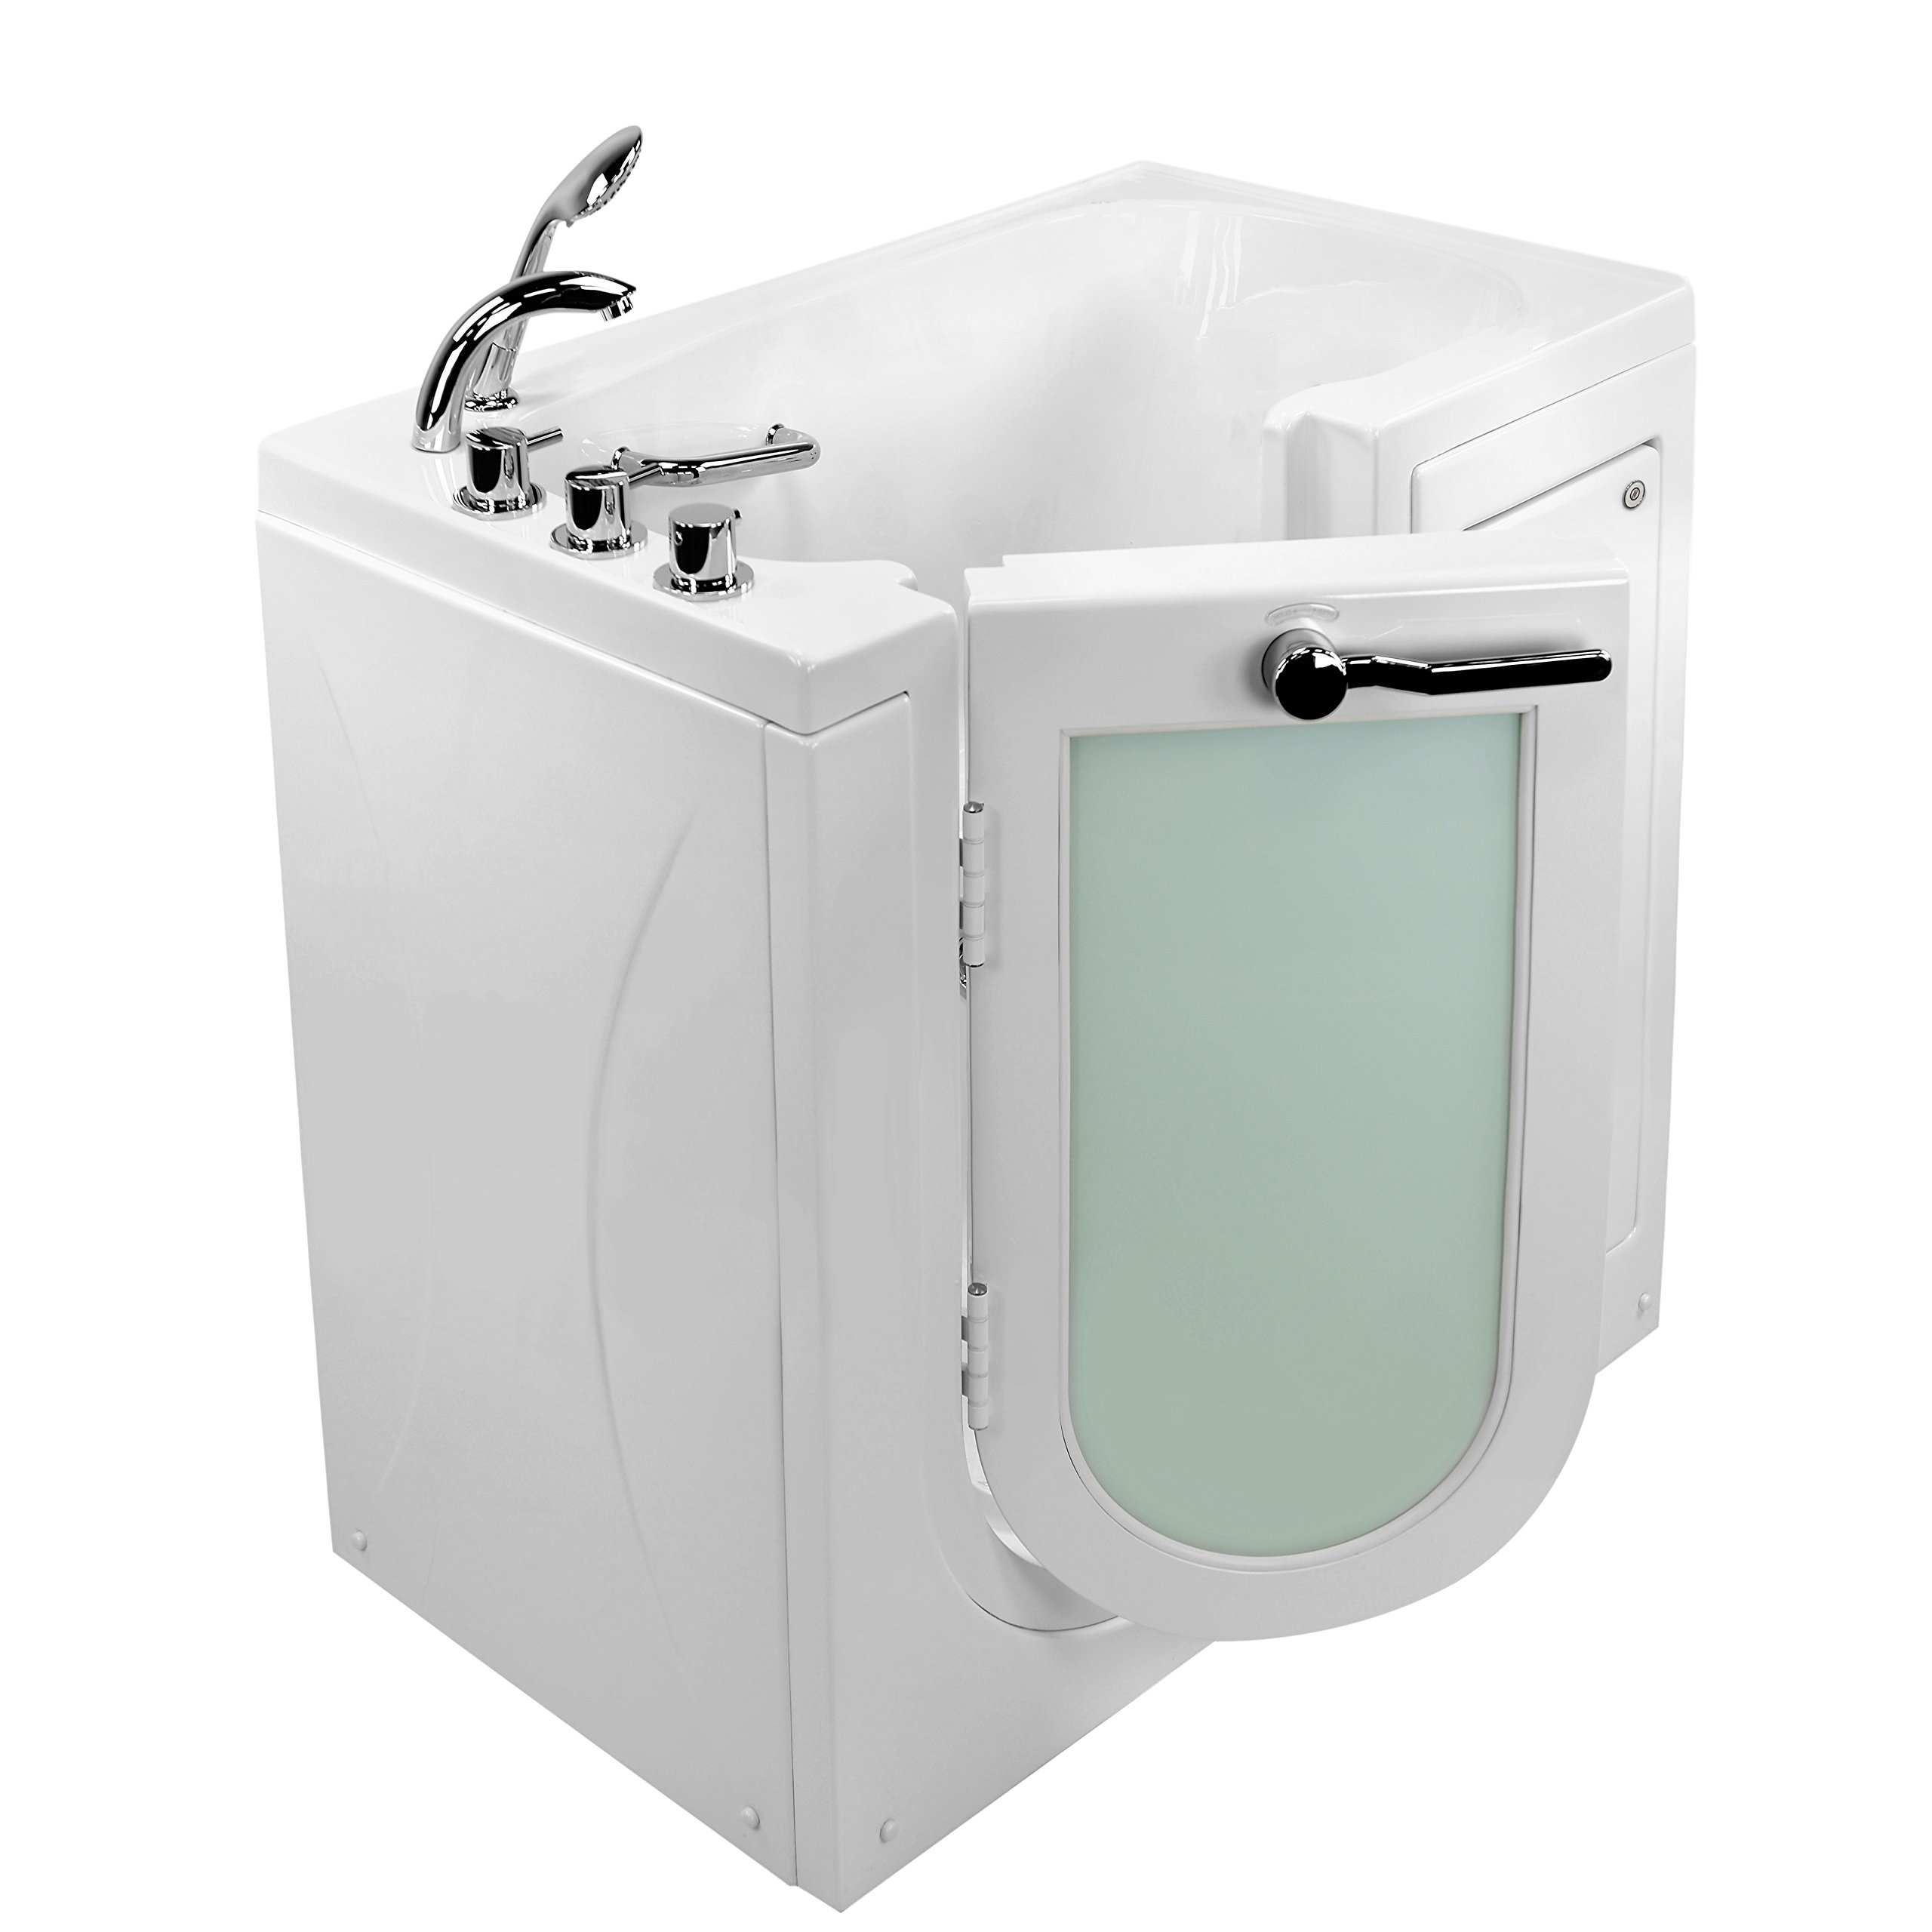 Ella's Bubbles OA2645-H-L Mobile Soaking and Heated Seat with Left Outward Swing Door Walk-In Tub White